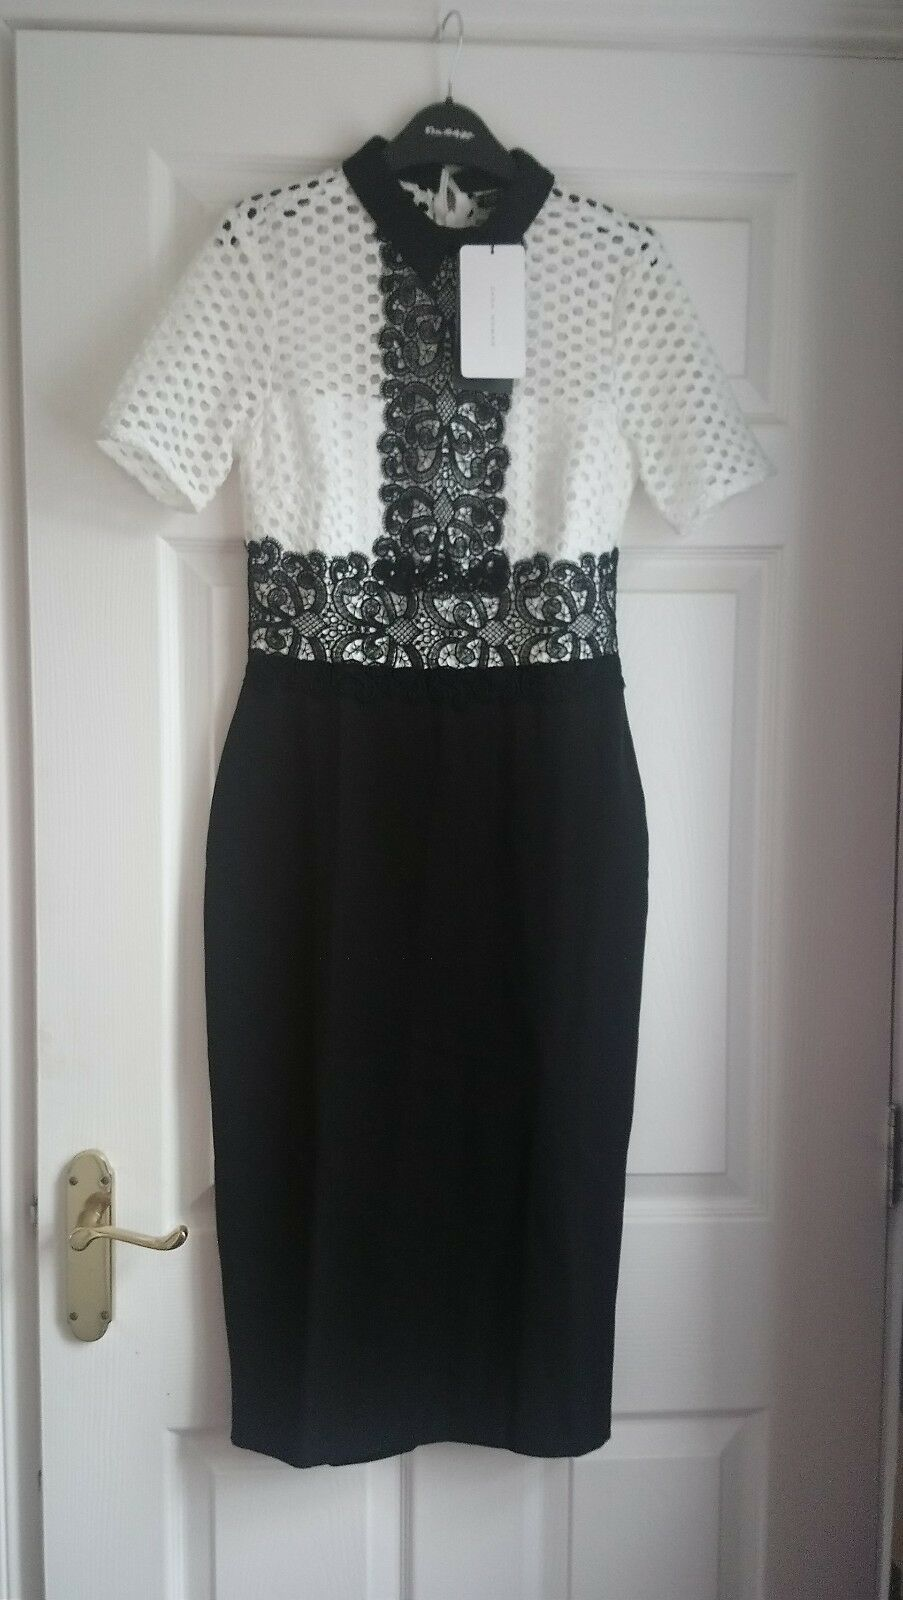 Zara Guipure Lace Dress SOLD OUT Very Rare Size XS